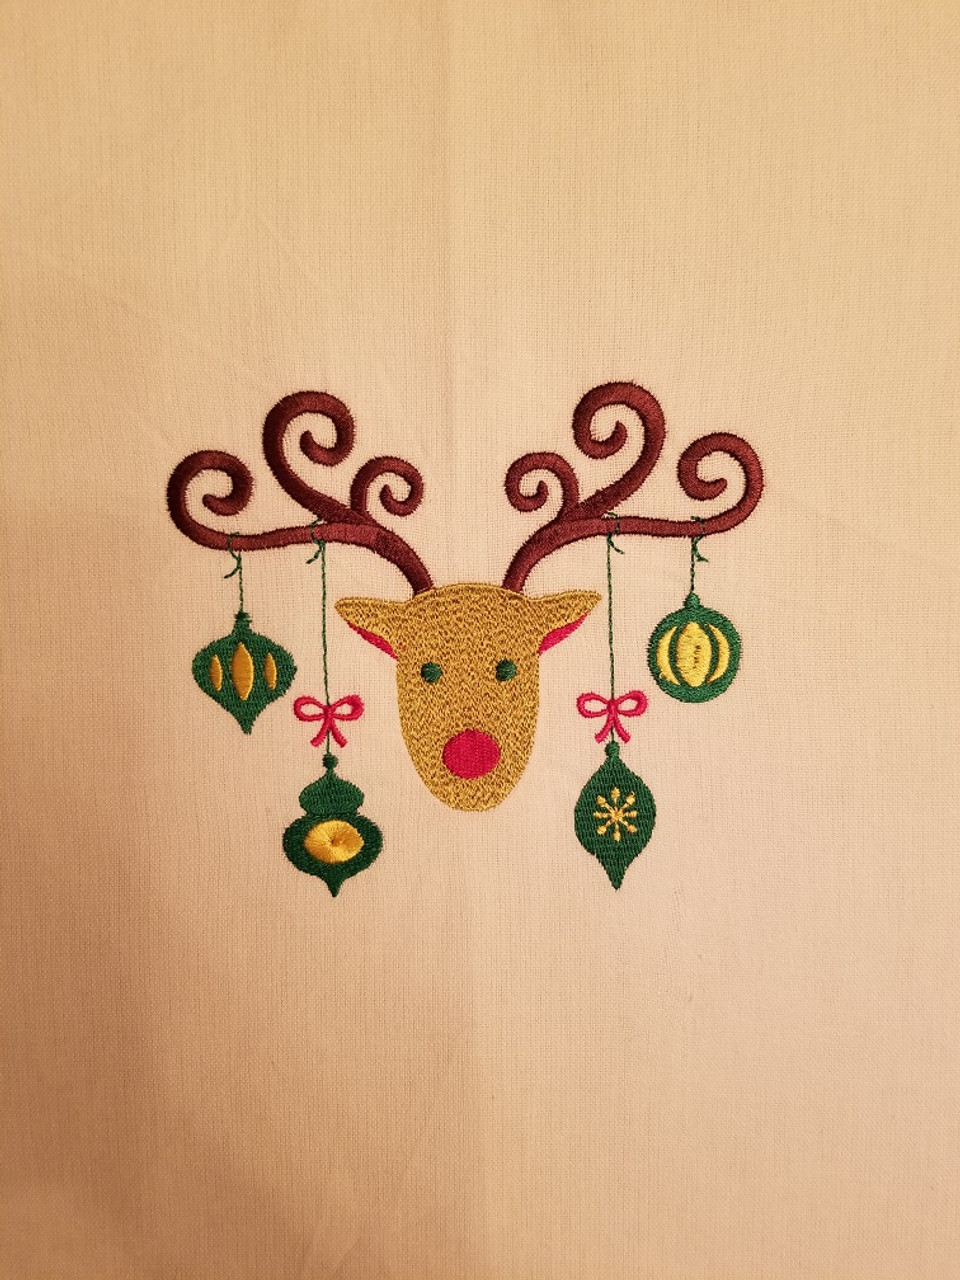 """Ornament Reindeer 1 - Kitchen Towel - 20"""" x 28"""" Embroidery on a white towel. 100% Cotton with loop, for optional hanging. Machine washable in cool water and tumble dry at low temperature. Minimal shrinkage. Size: 20"""" x 28"""""""